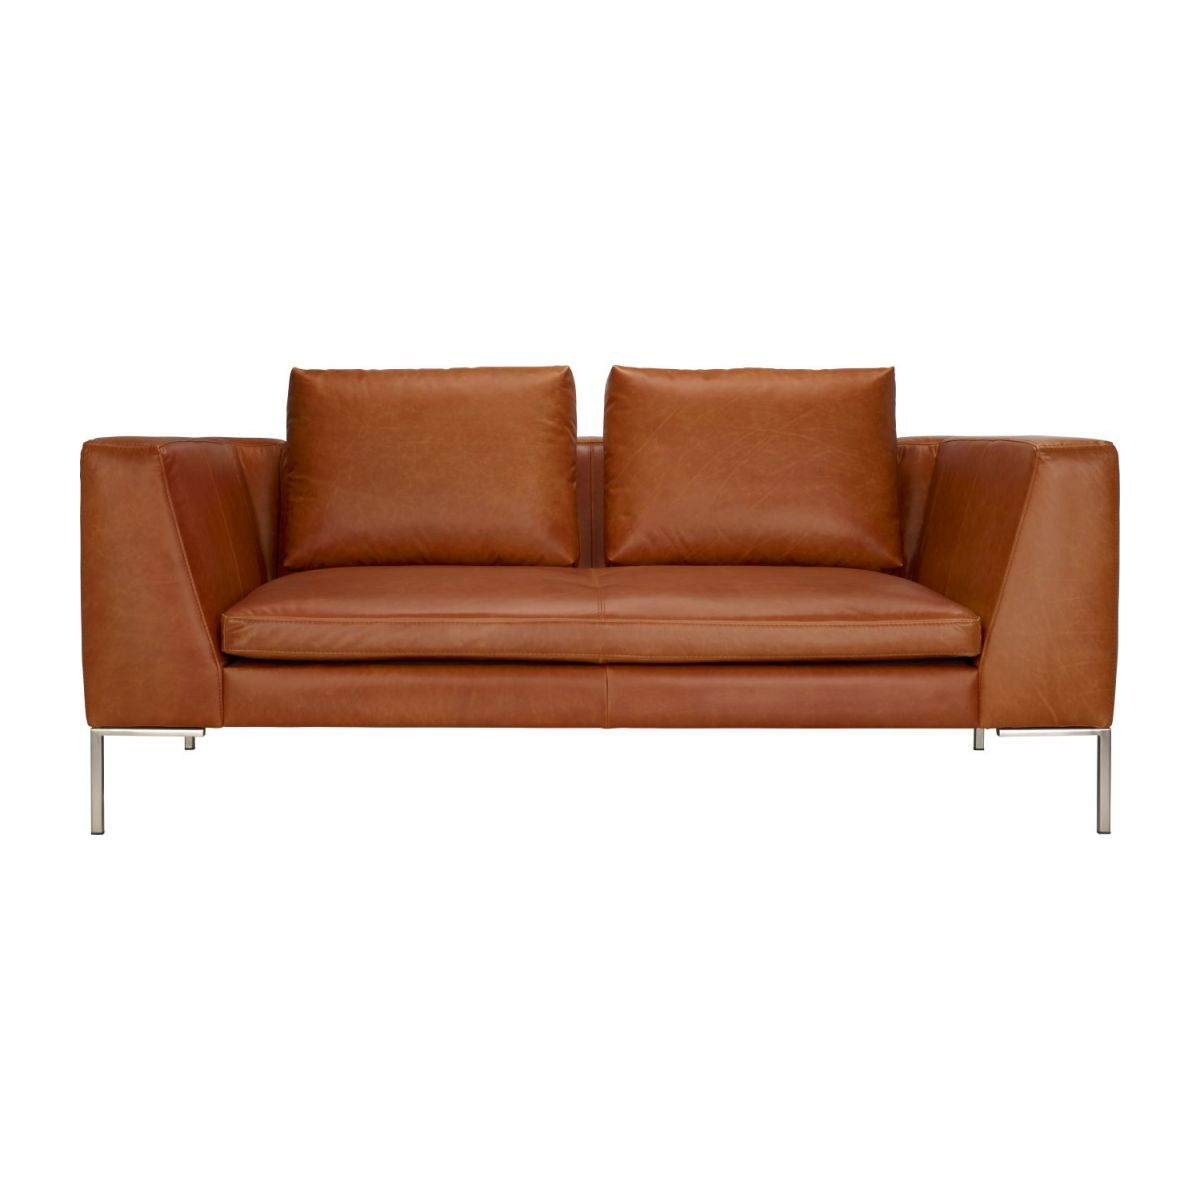 2 seater sofa in Vintage aniline leather, old chestnut n°4